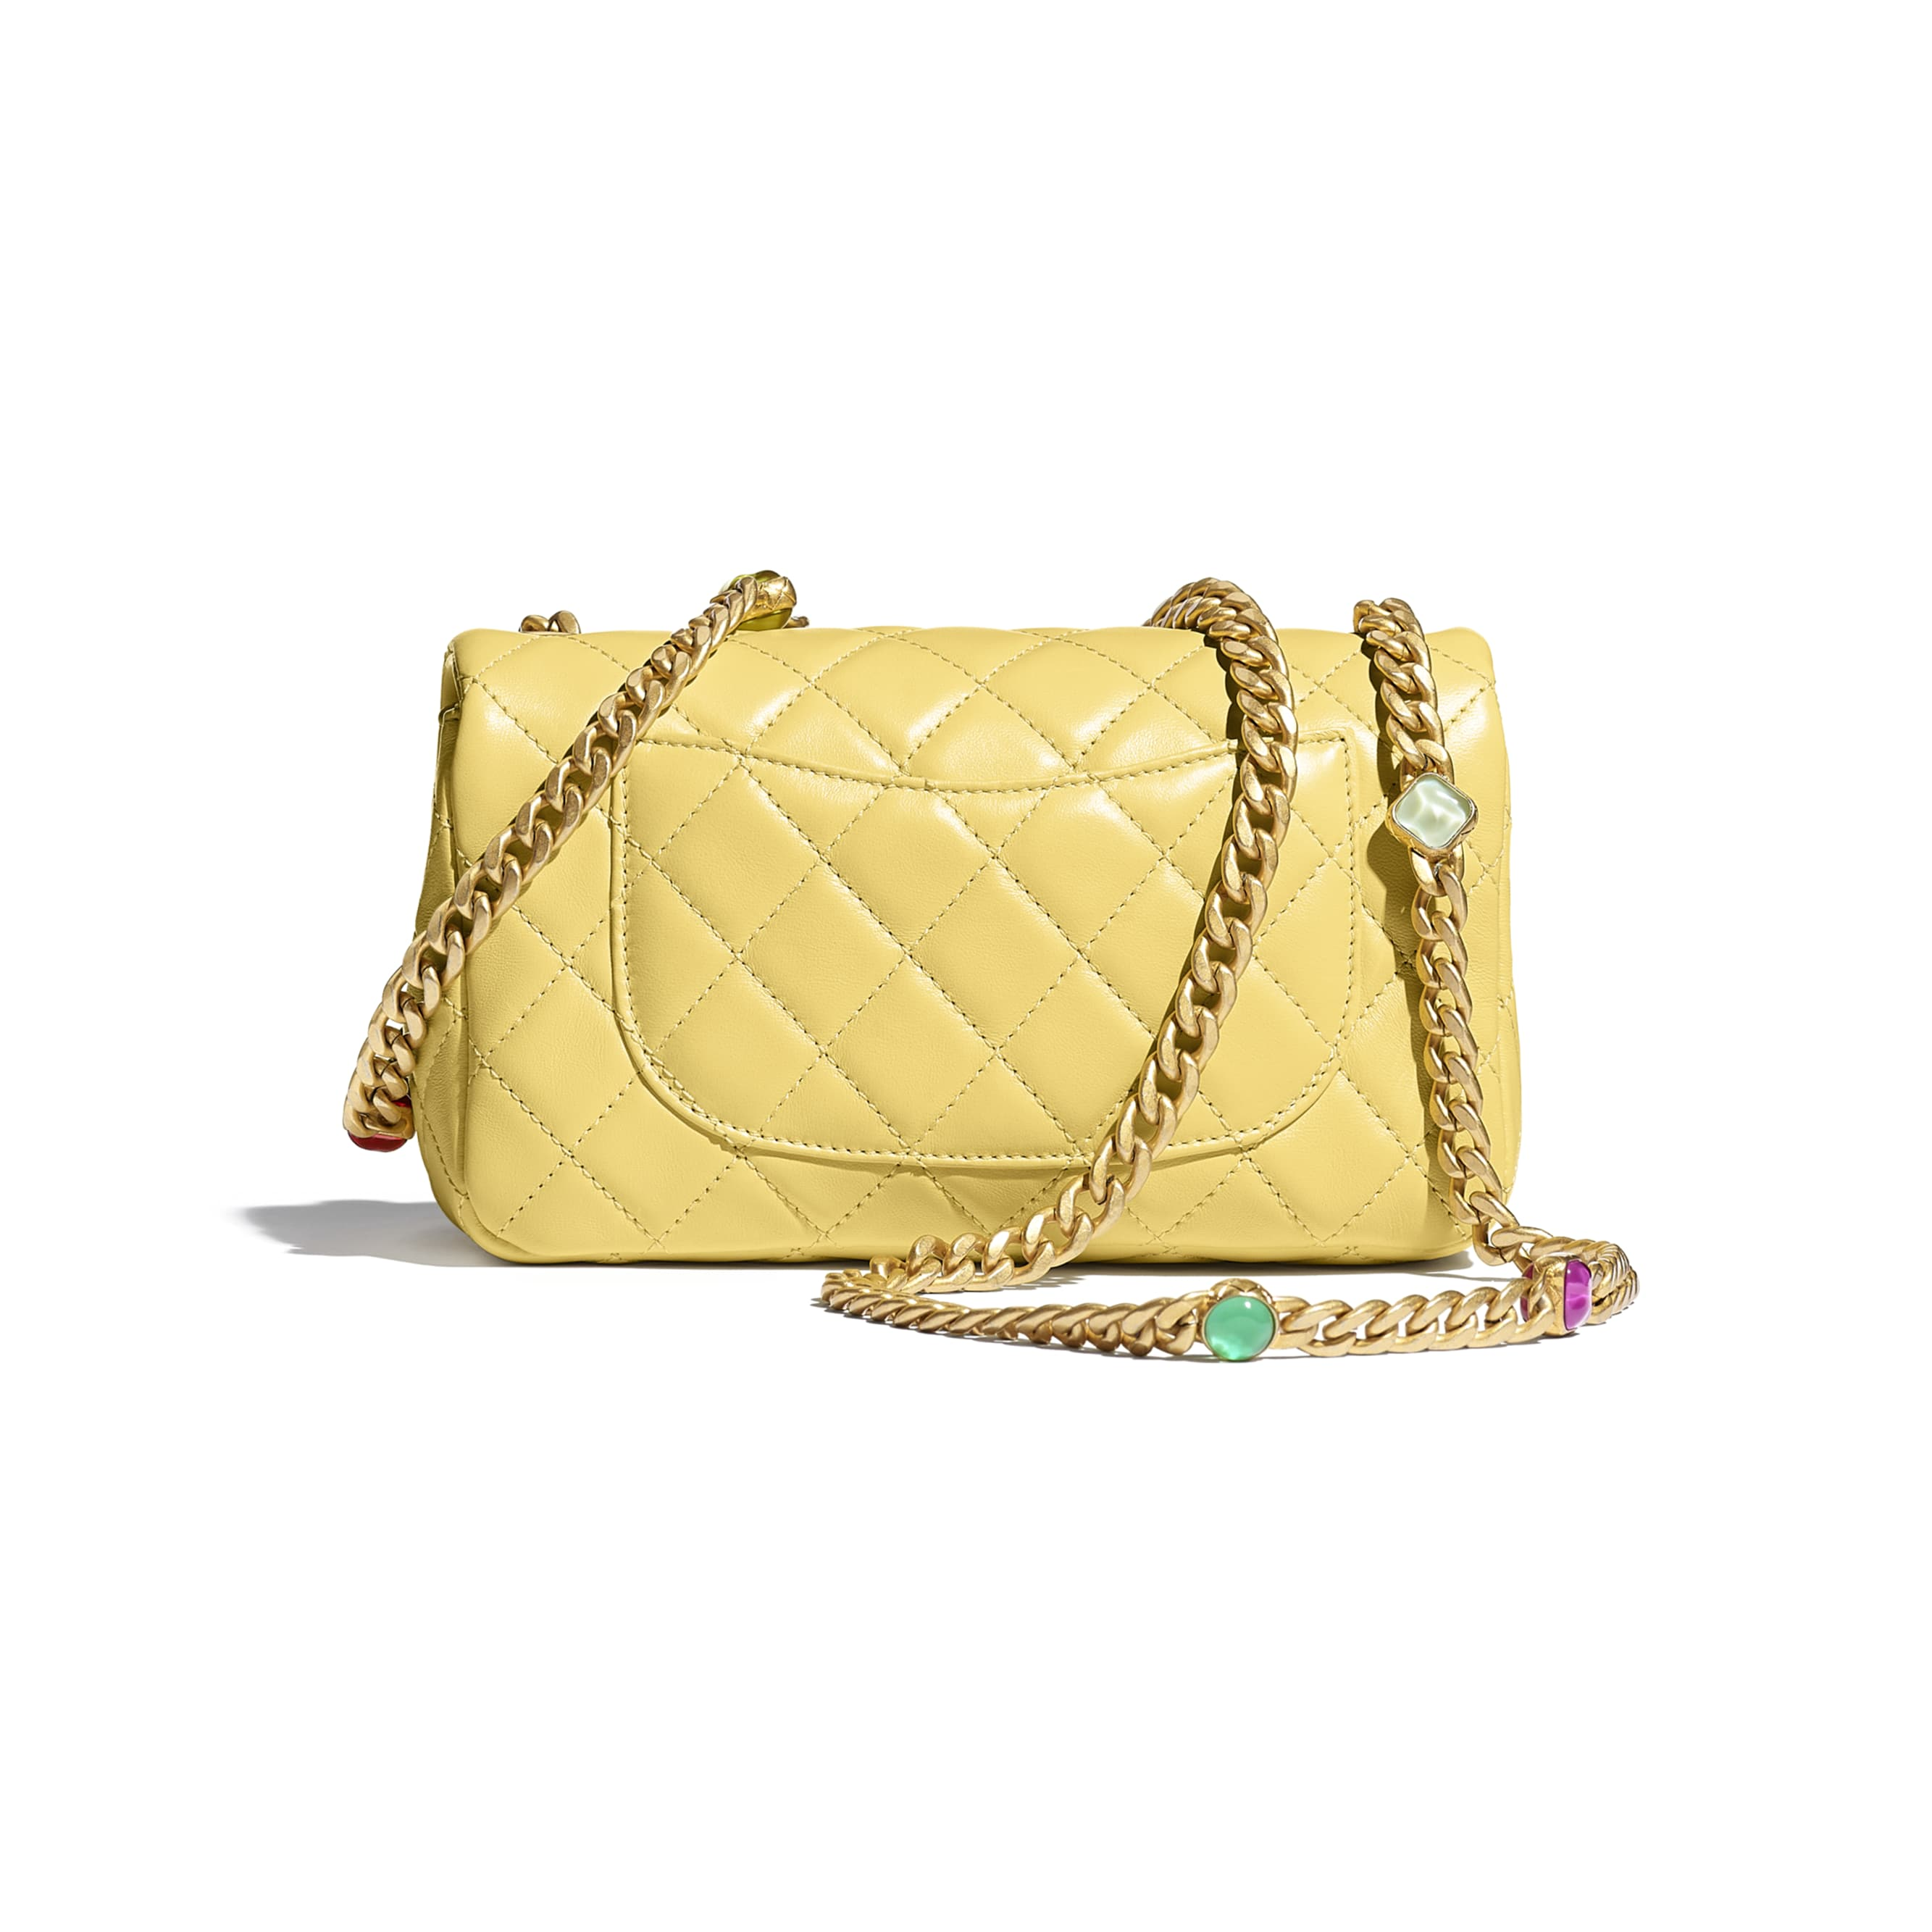 Flap Bag - Yellow - Lambskin, Resin & Gold-Tone Metal - CHANEL - Alternative view - see standard sized version